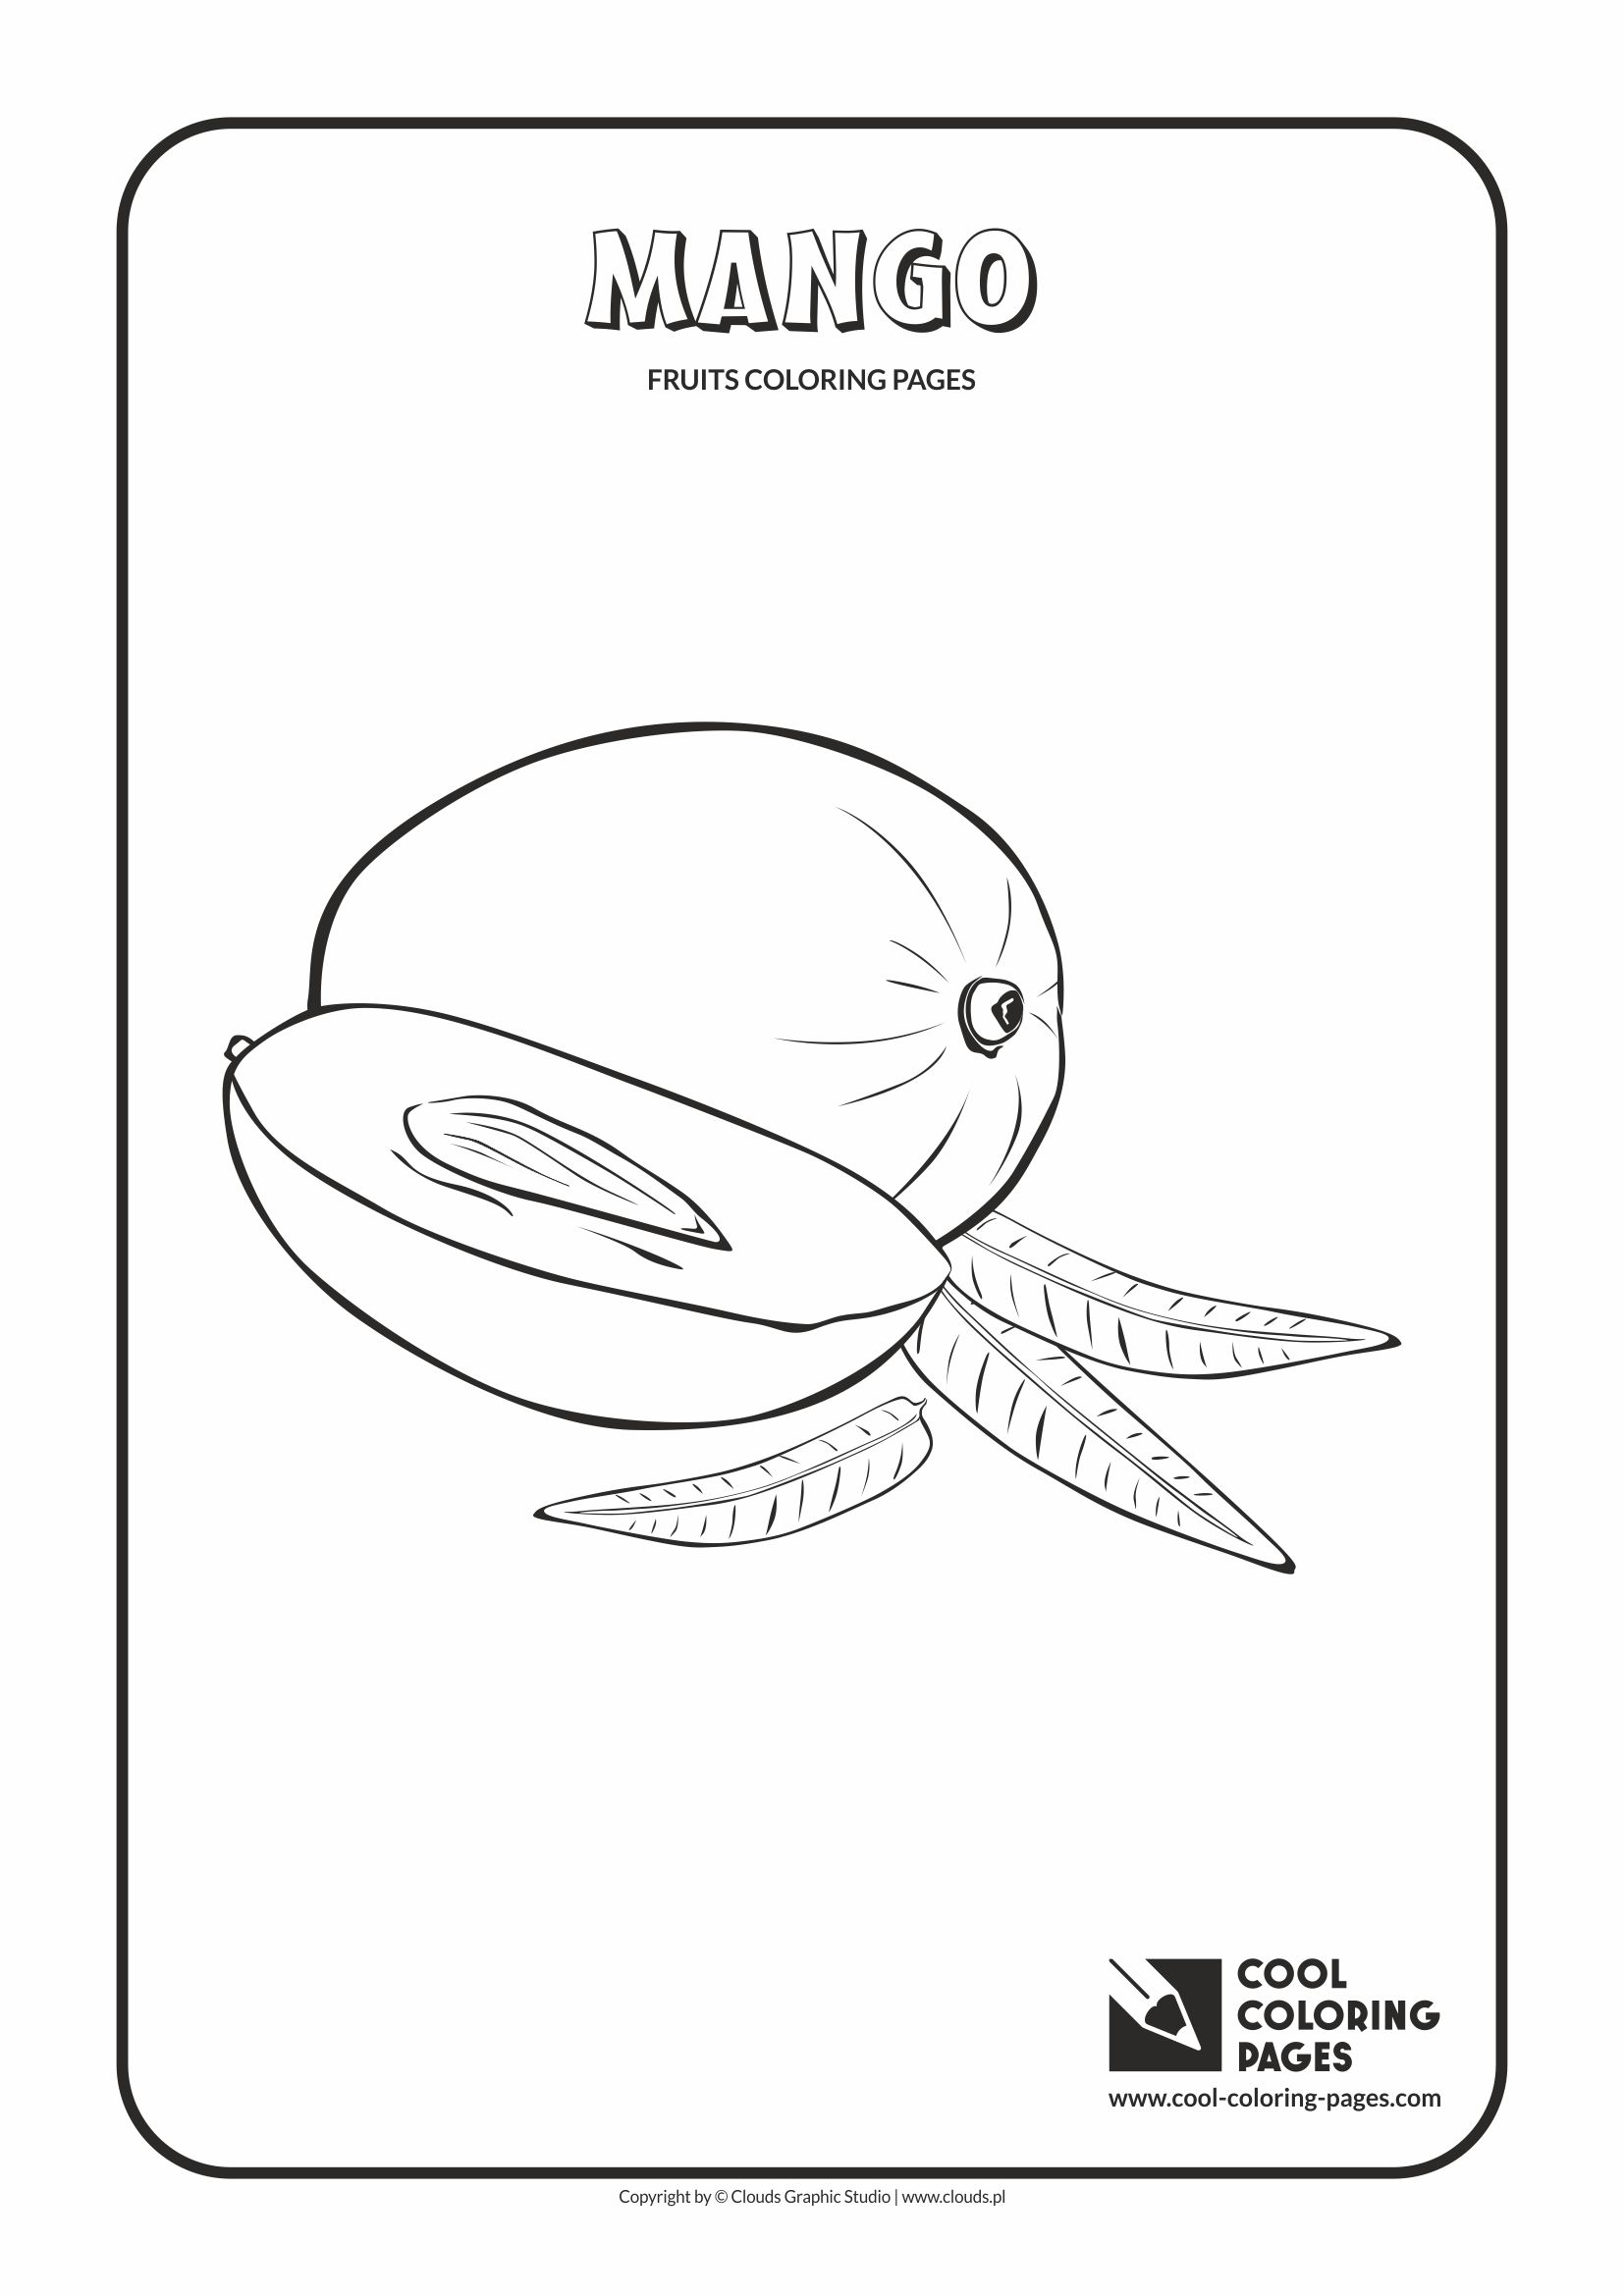 Cool Coloring Pages Fruits coloring